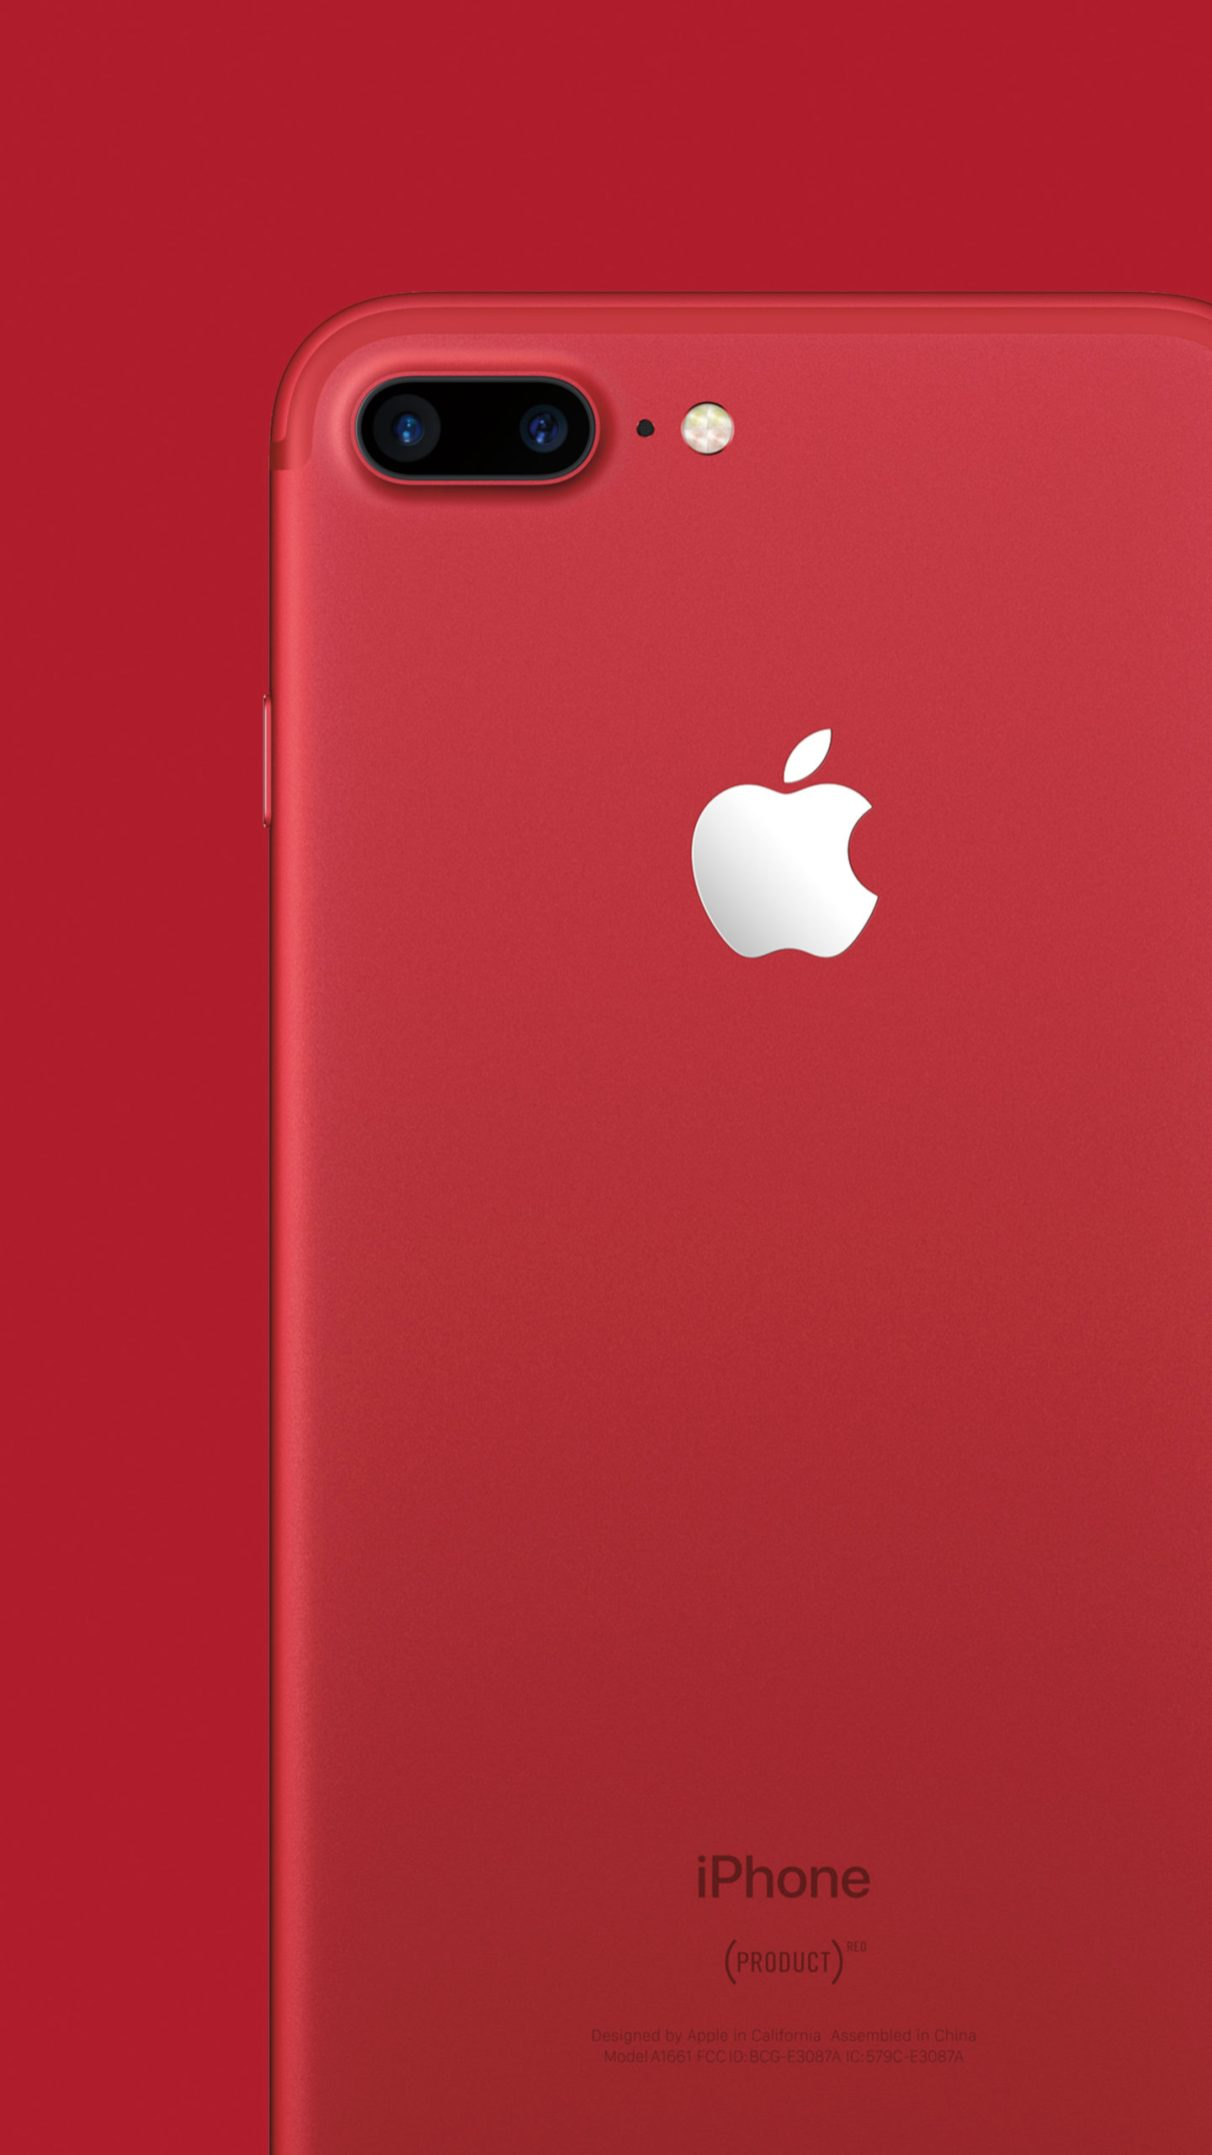 PRODUCT-RED-3-iPhone-wallpaper